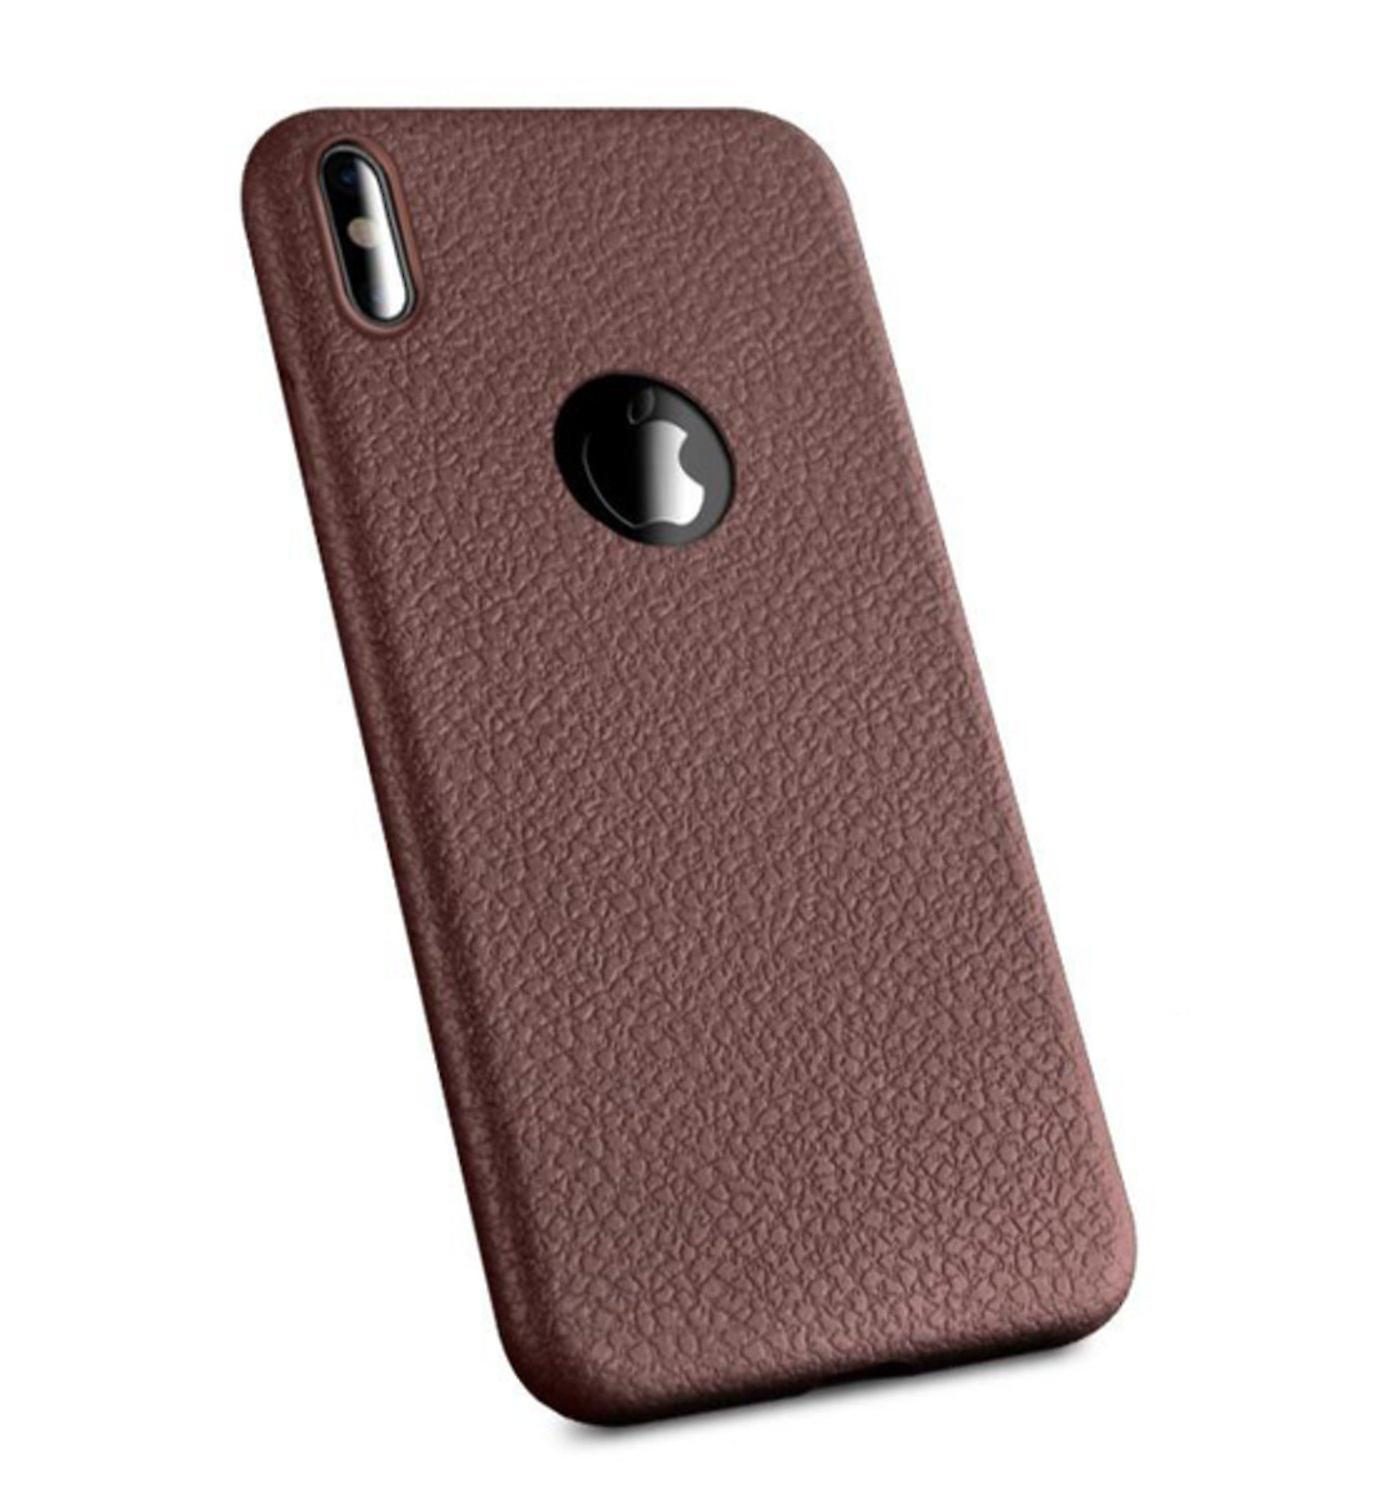 Soft Leather Lookalike case - iPhone X / XS